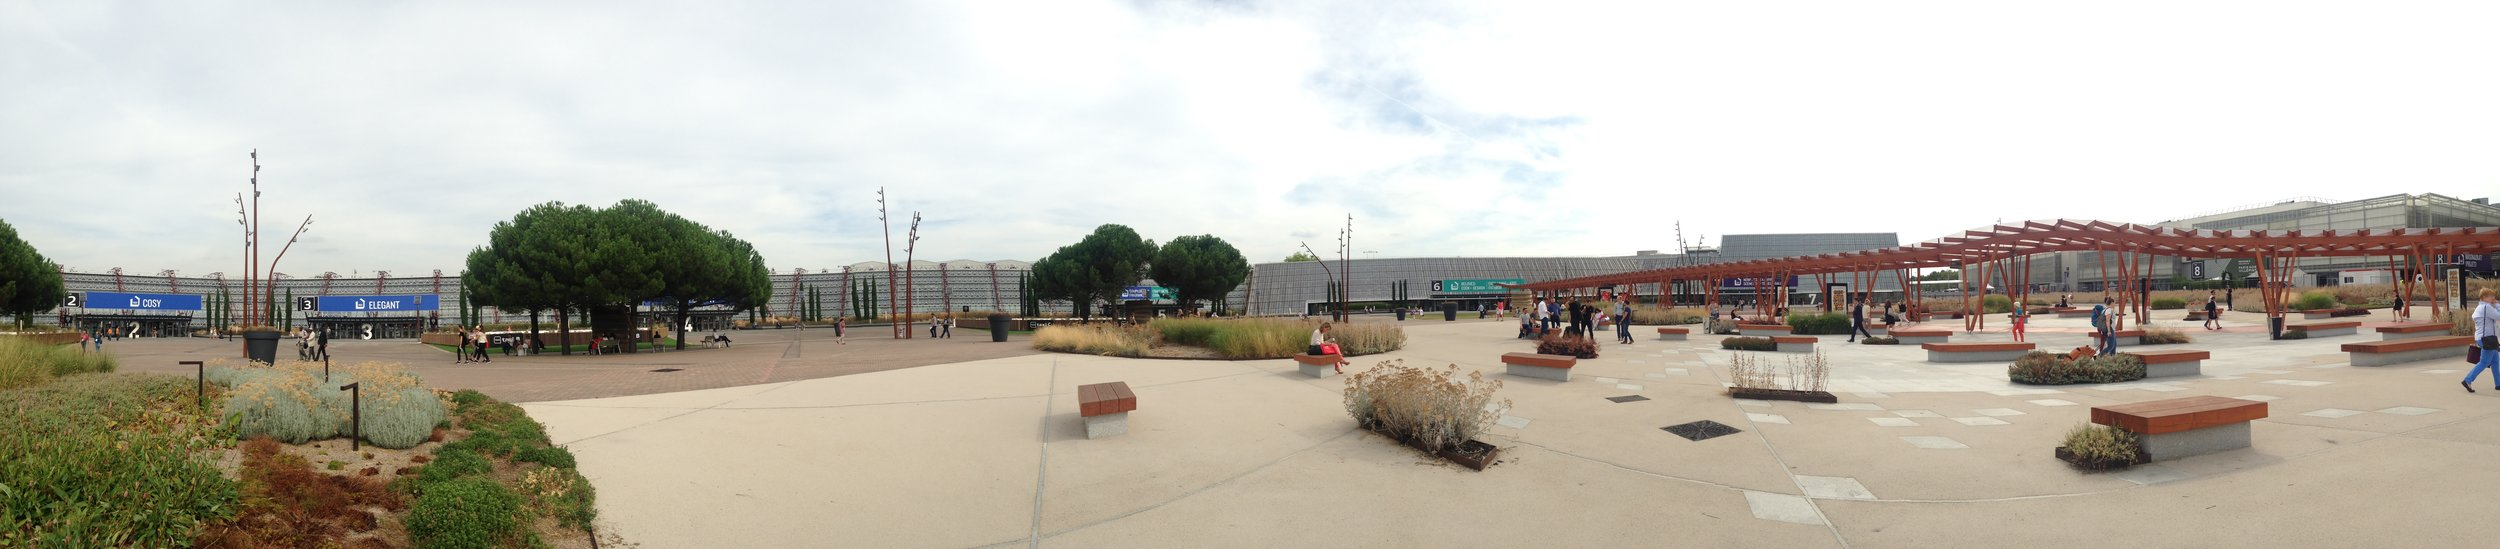 Panoramic of Parc des Expositions, Paris where Maison&Objet is held.